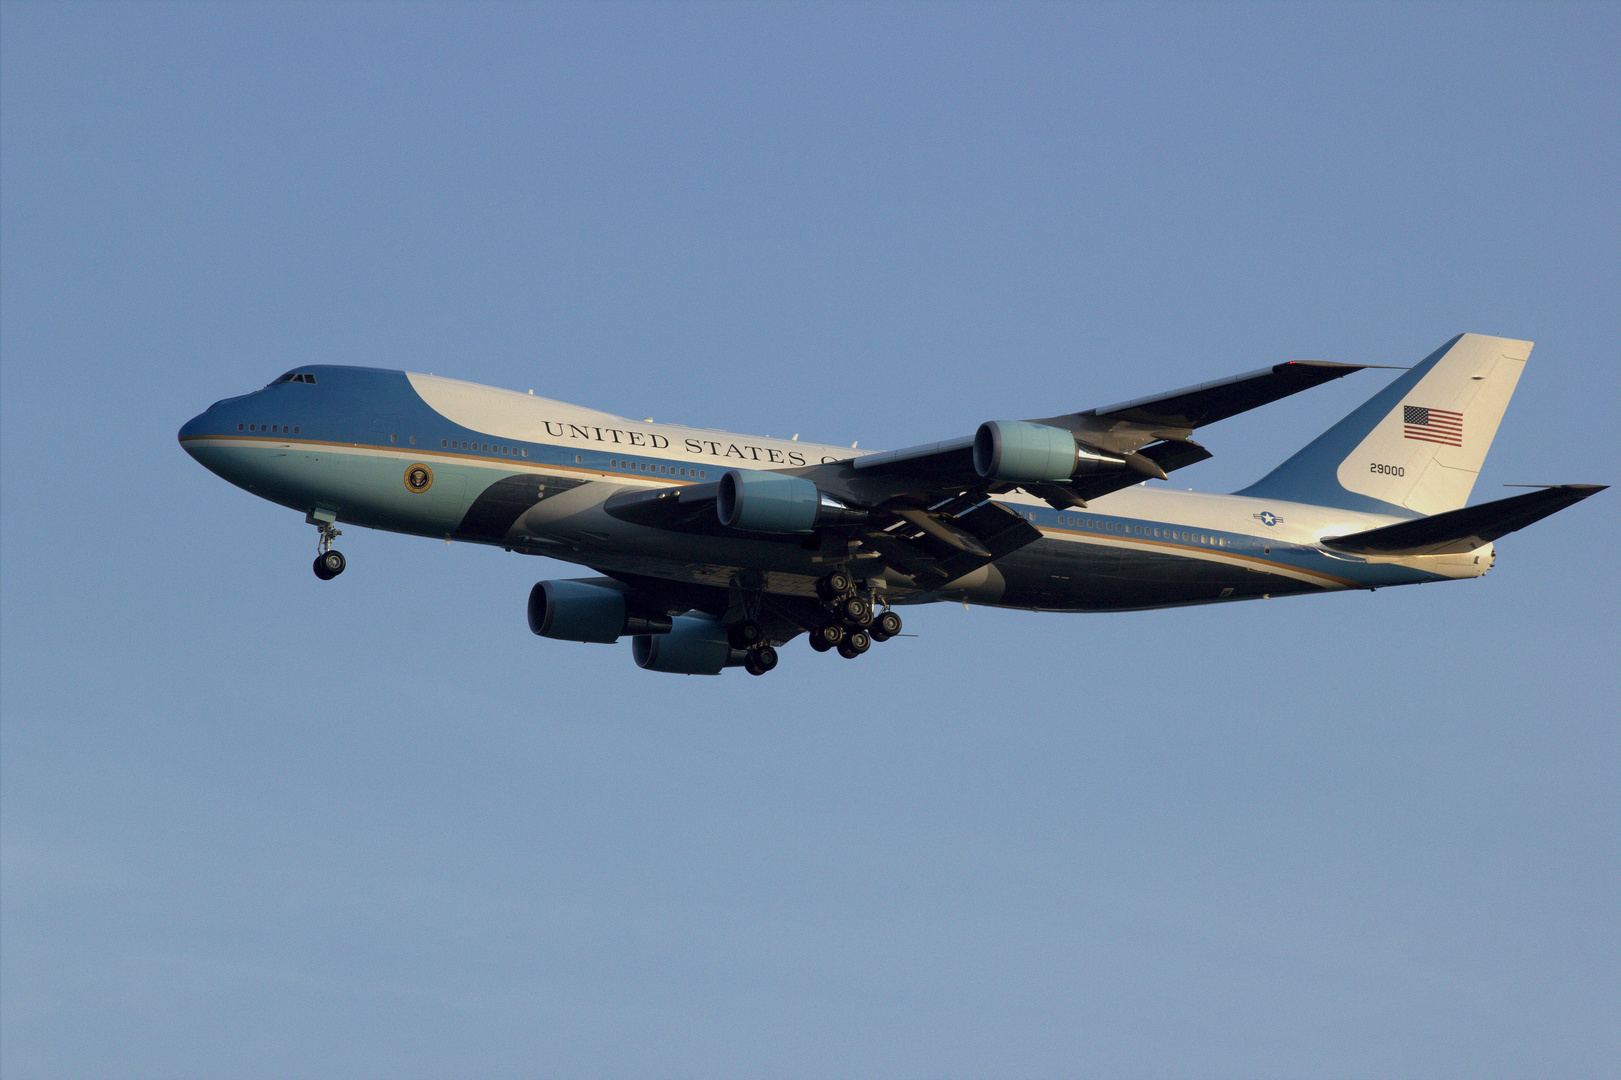 Air Force One (VC-25A, 29000)